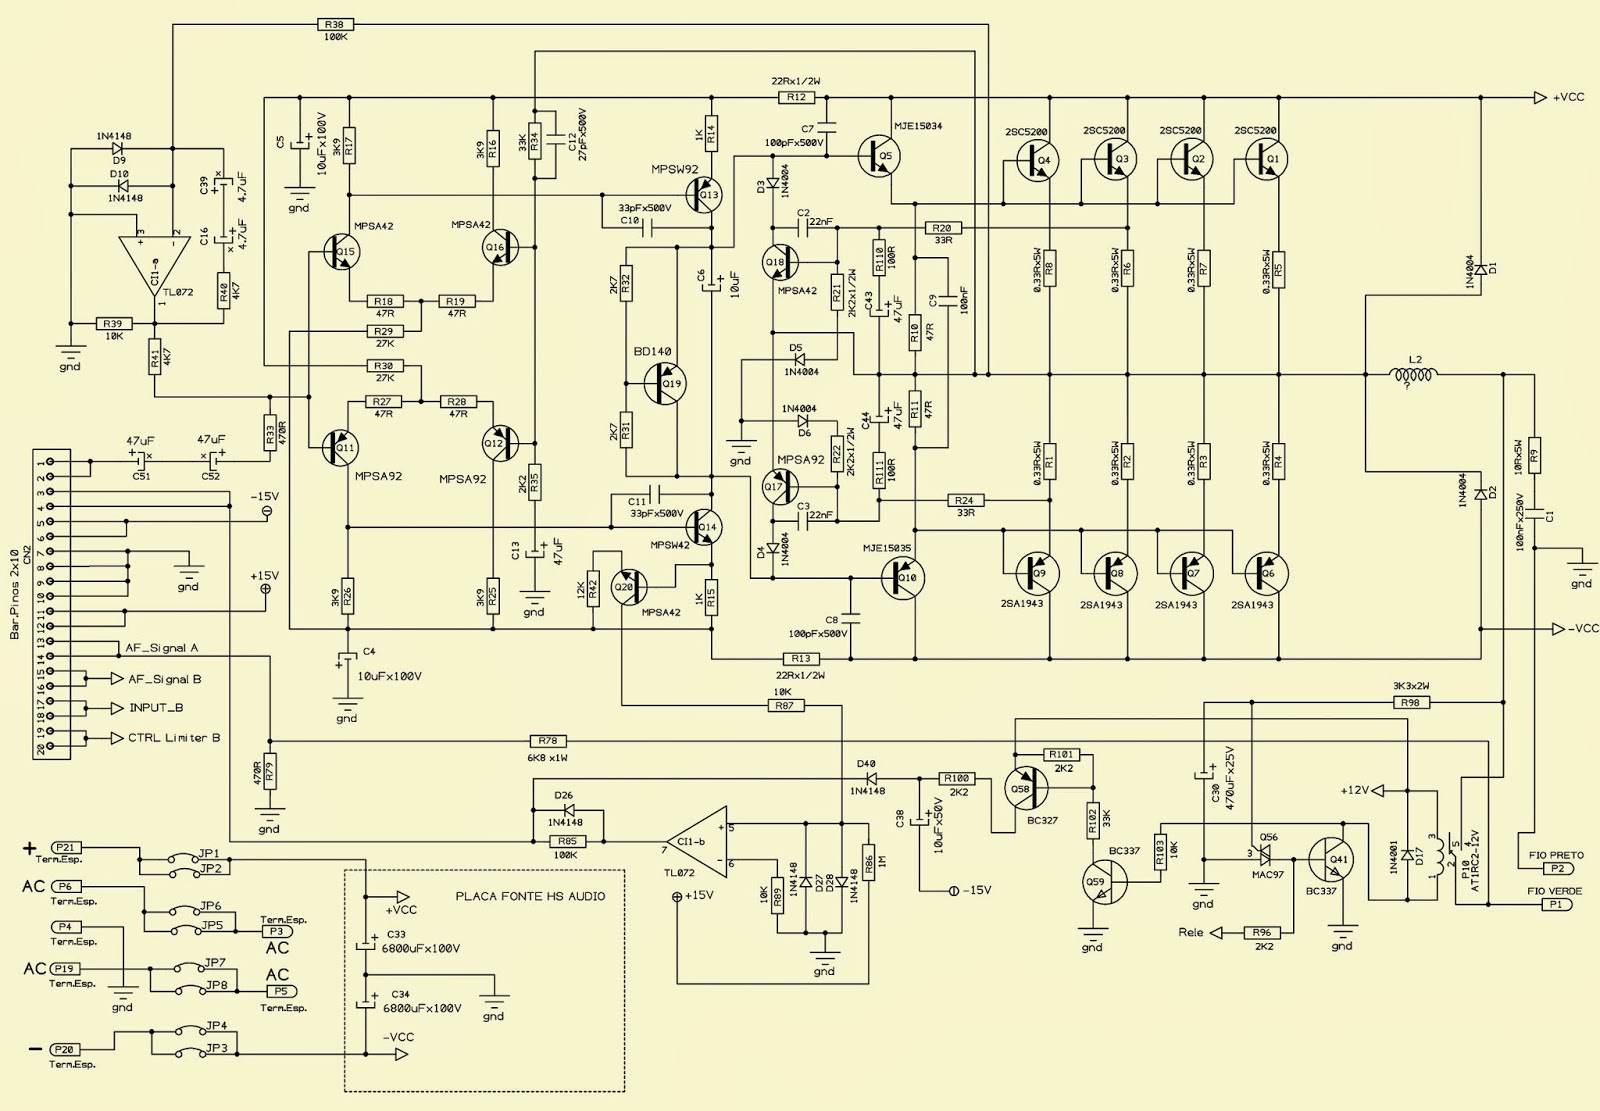 Hotsound Professional Stereo Hs Audio 2600 Schematic